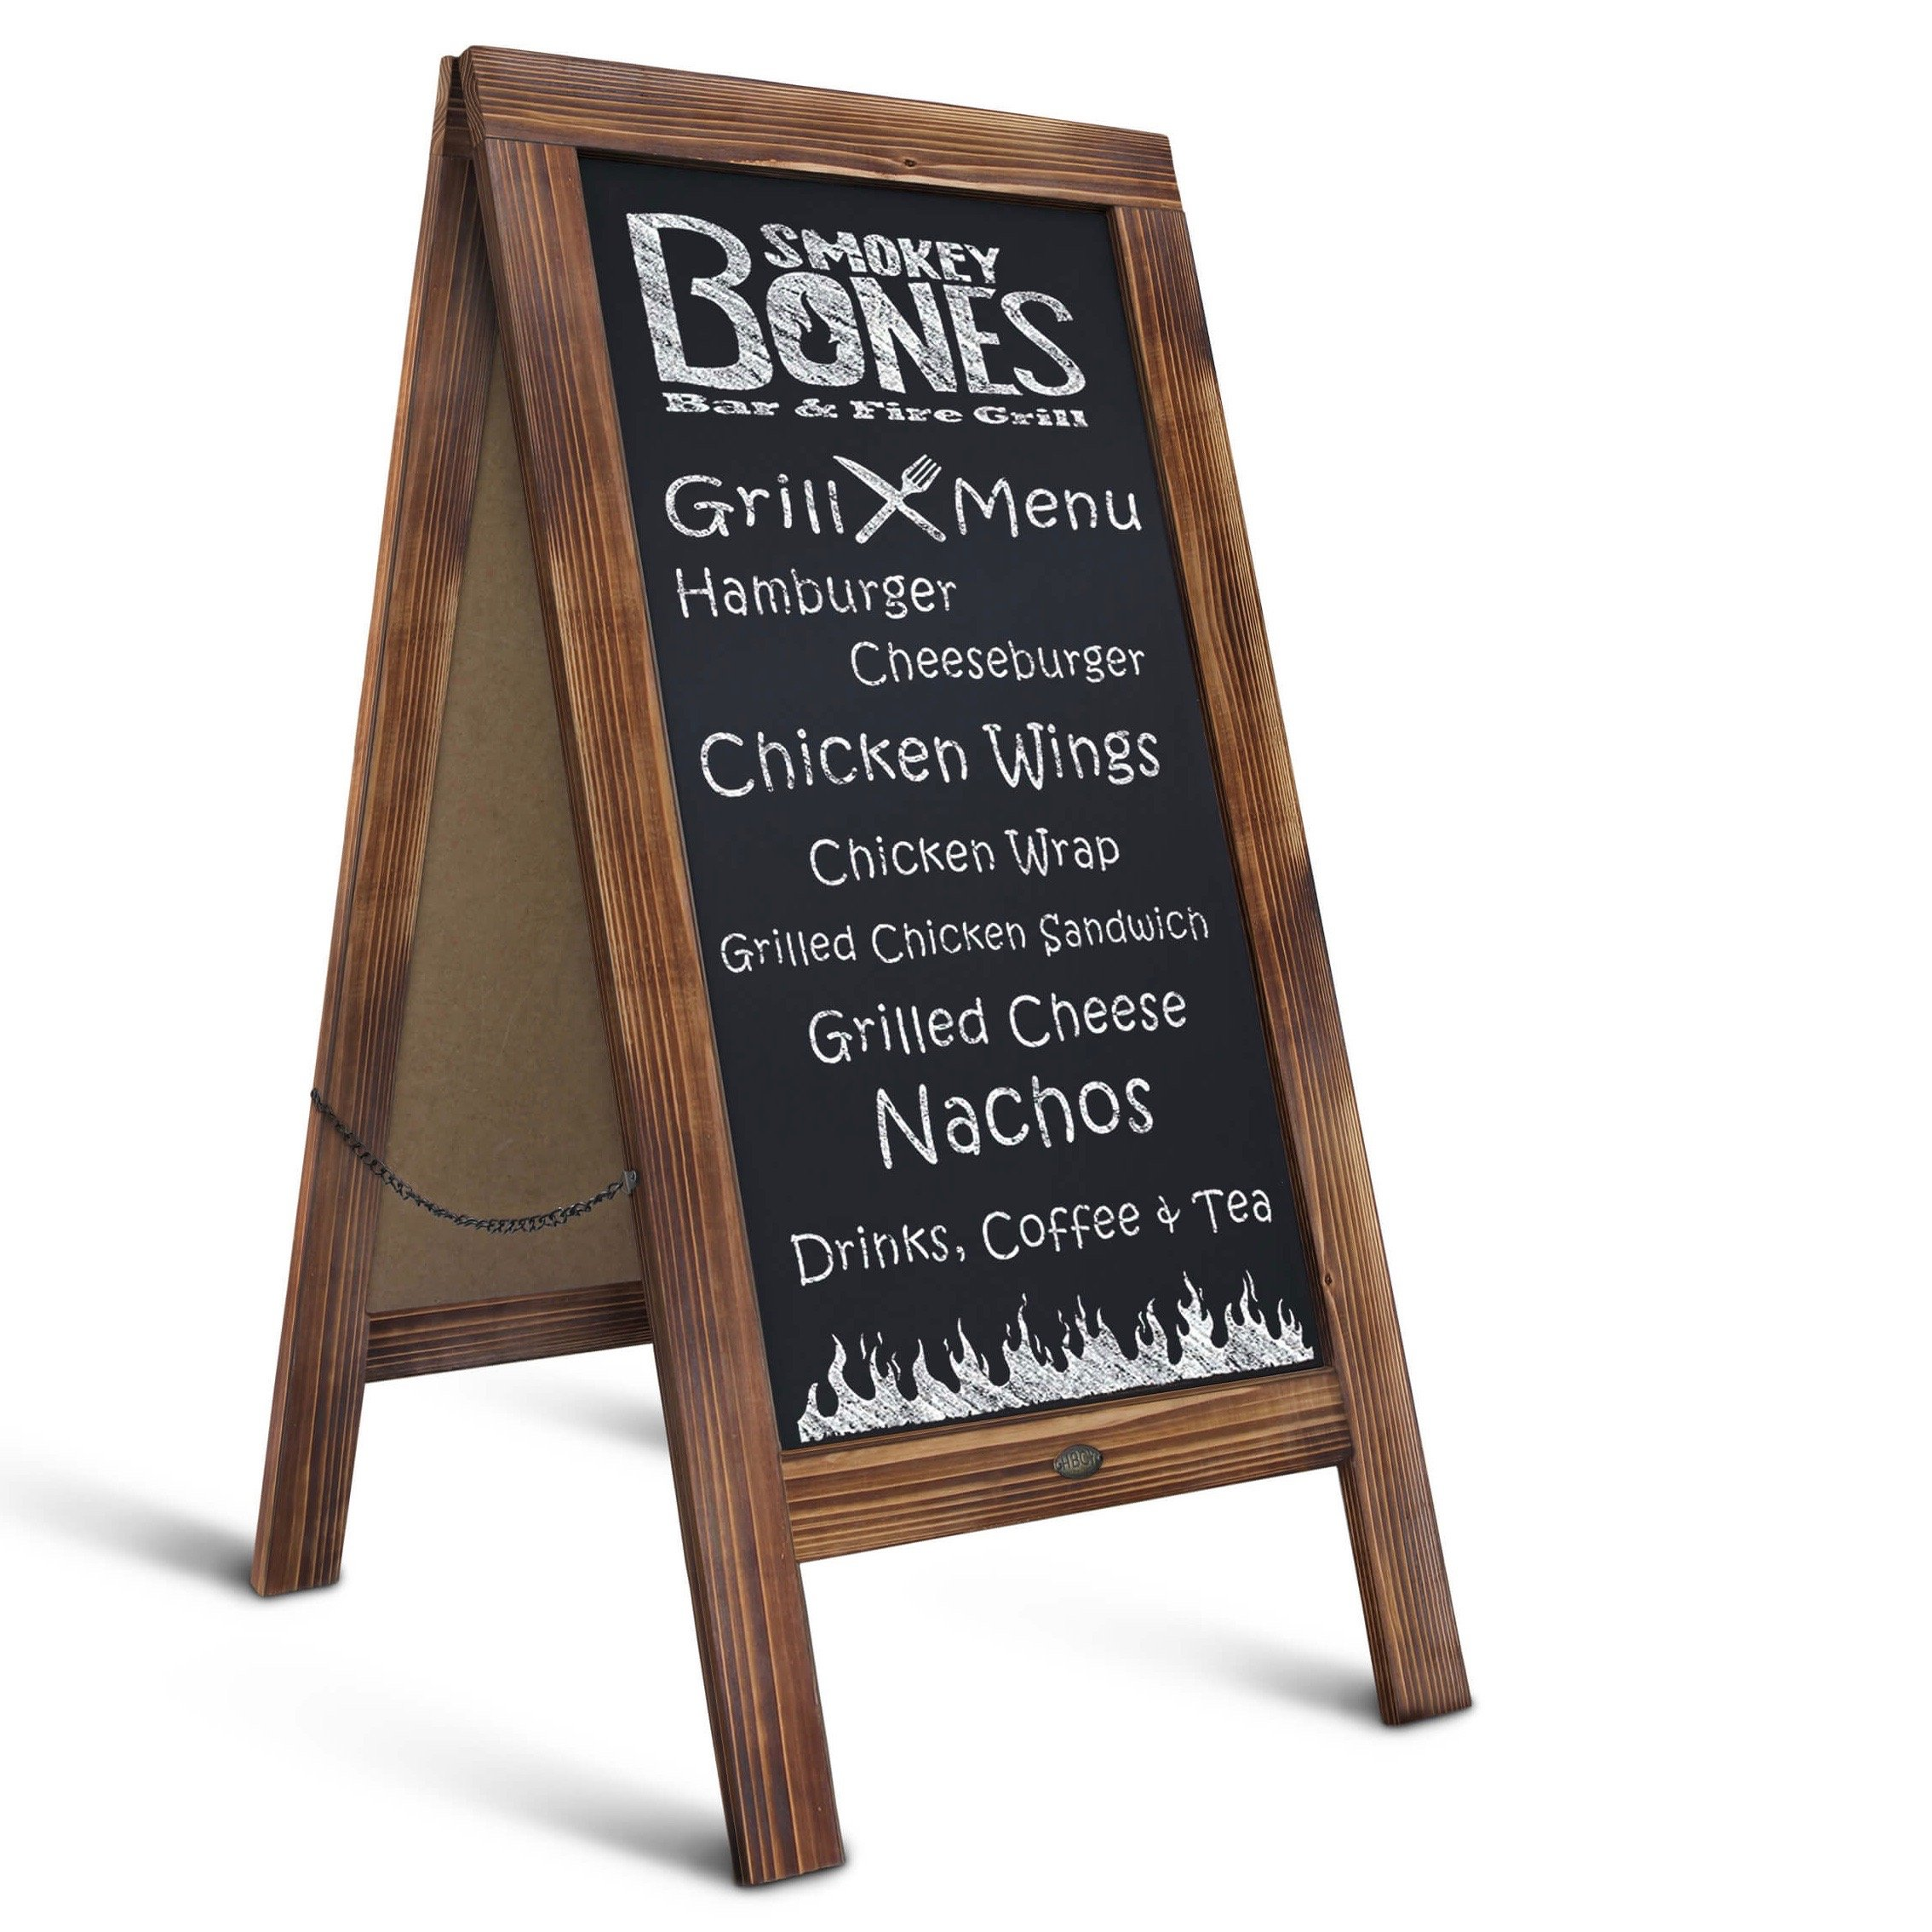 Rustic Magnetic A-Frame Chalkboard Sign/Extra Large 40'' x 20'' Free Standing Chalkboard Easel/Sturdy Sidewalk Sign Sandwich Board/Outdoor A Frame Chalk Board for Weddings & More!